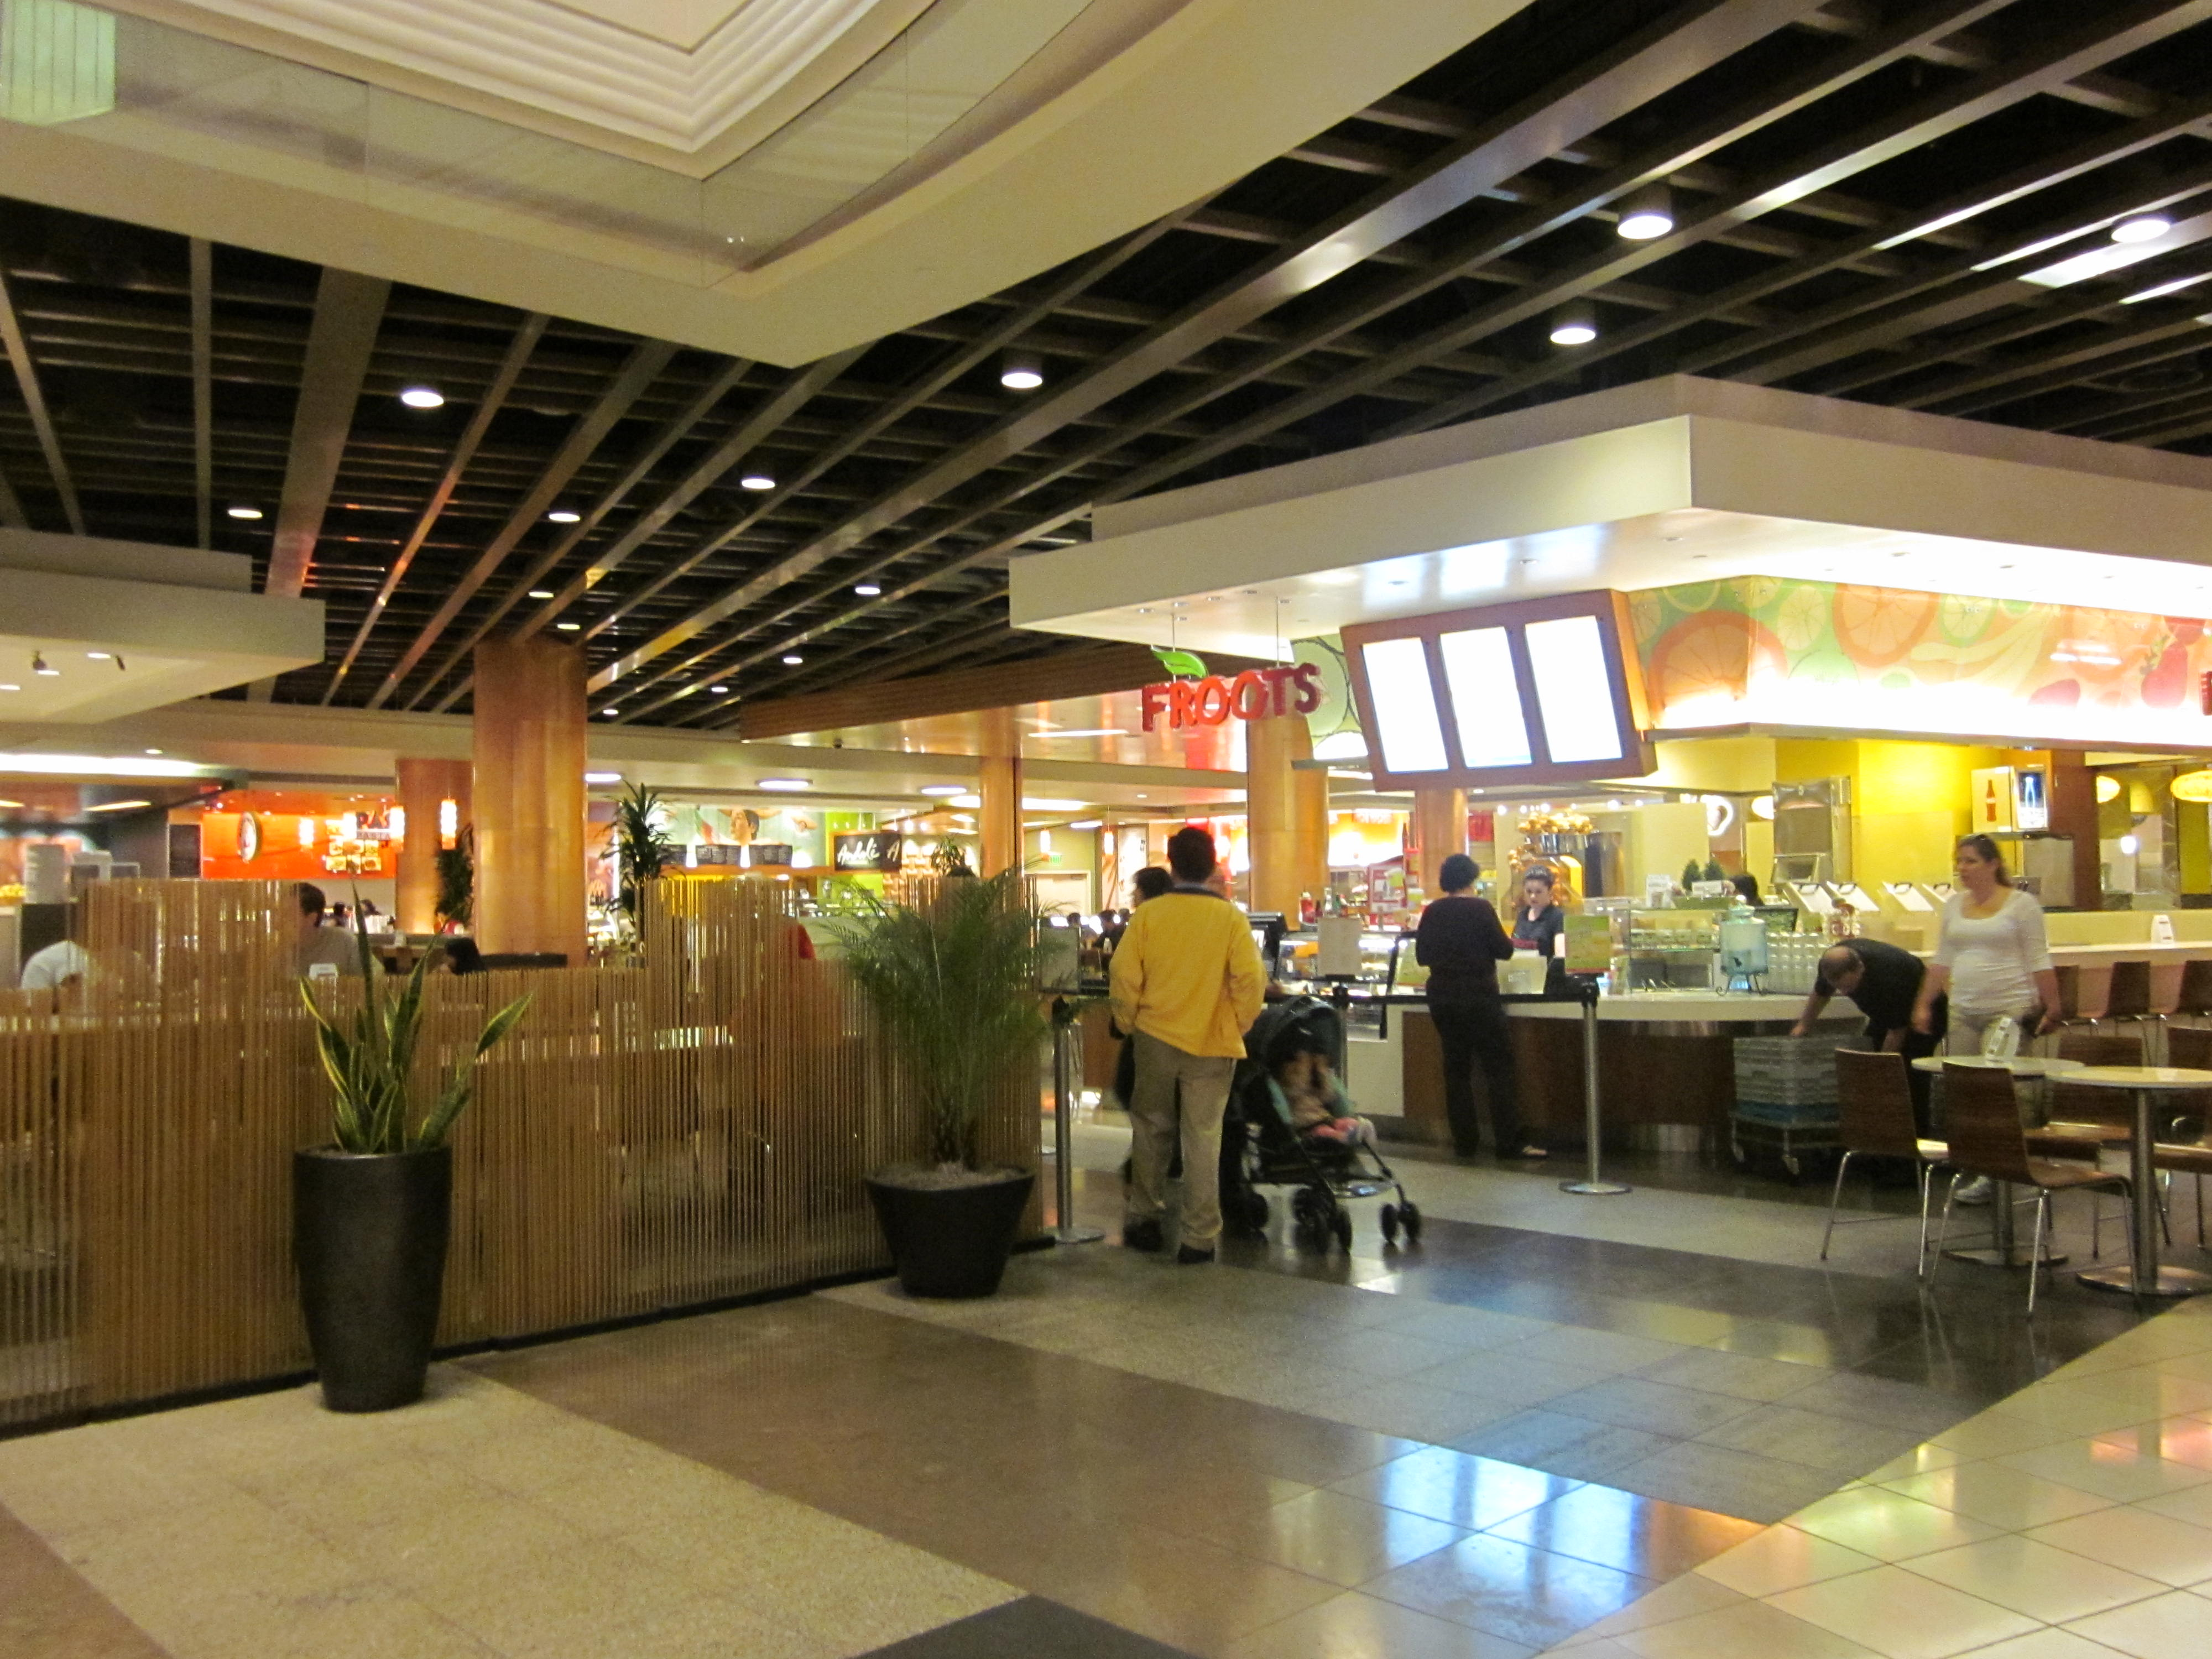 Westfield Shopping Center San Francisco Food Court